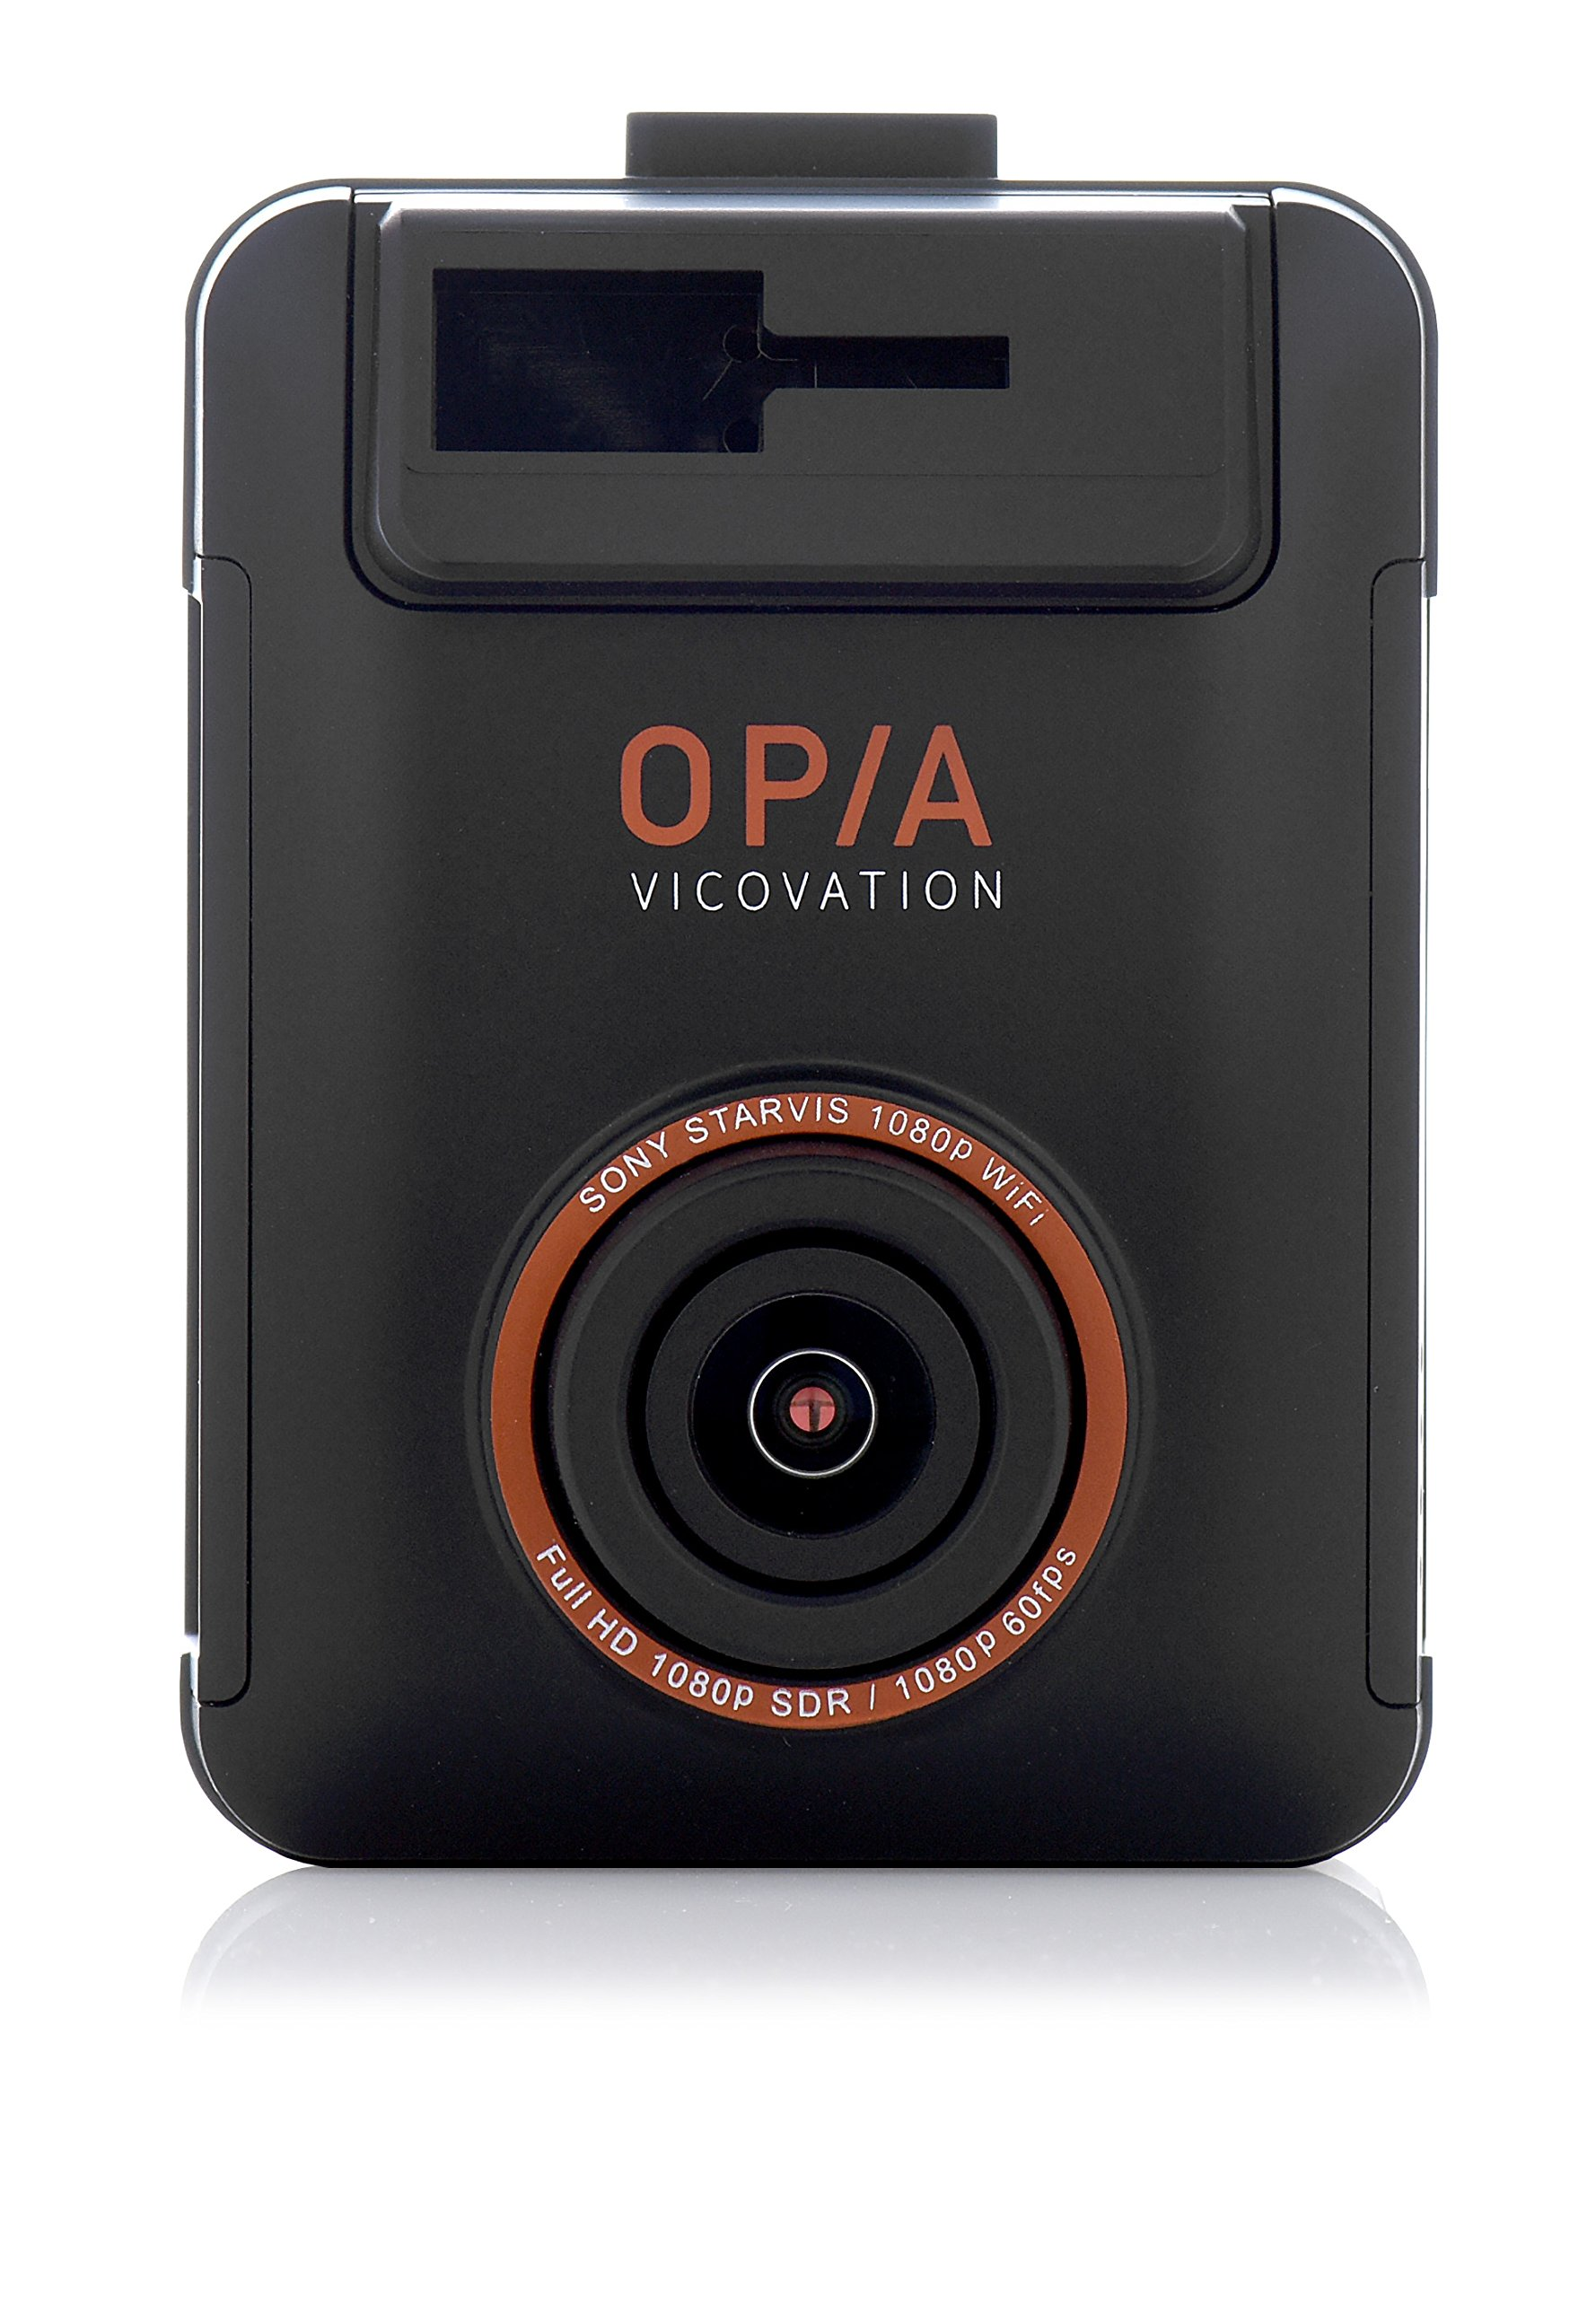 Vicovation Vico-Opia1 SONY STARVIS Full HD 1080p SDR WiFi Smart CarCam (solo)